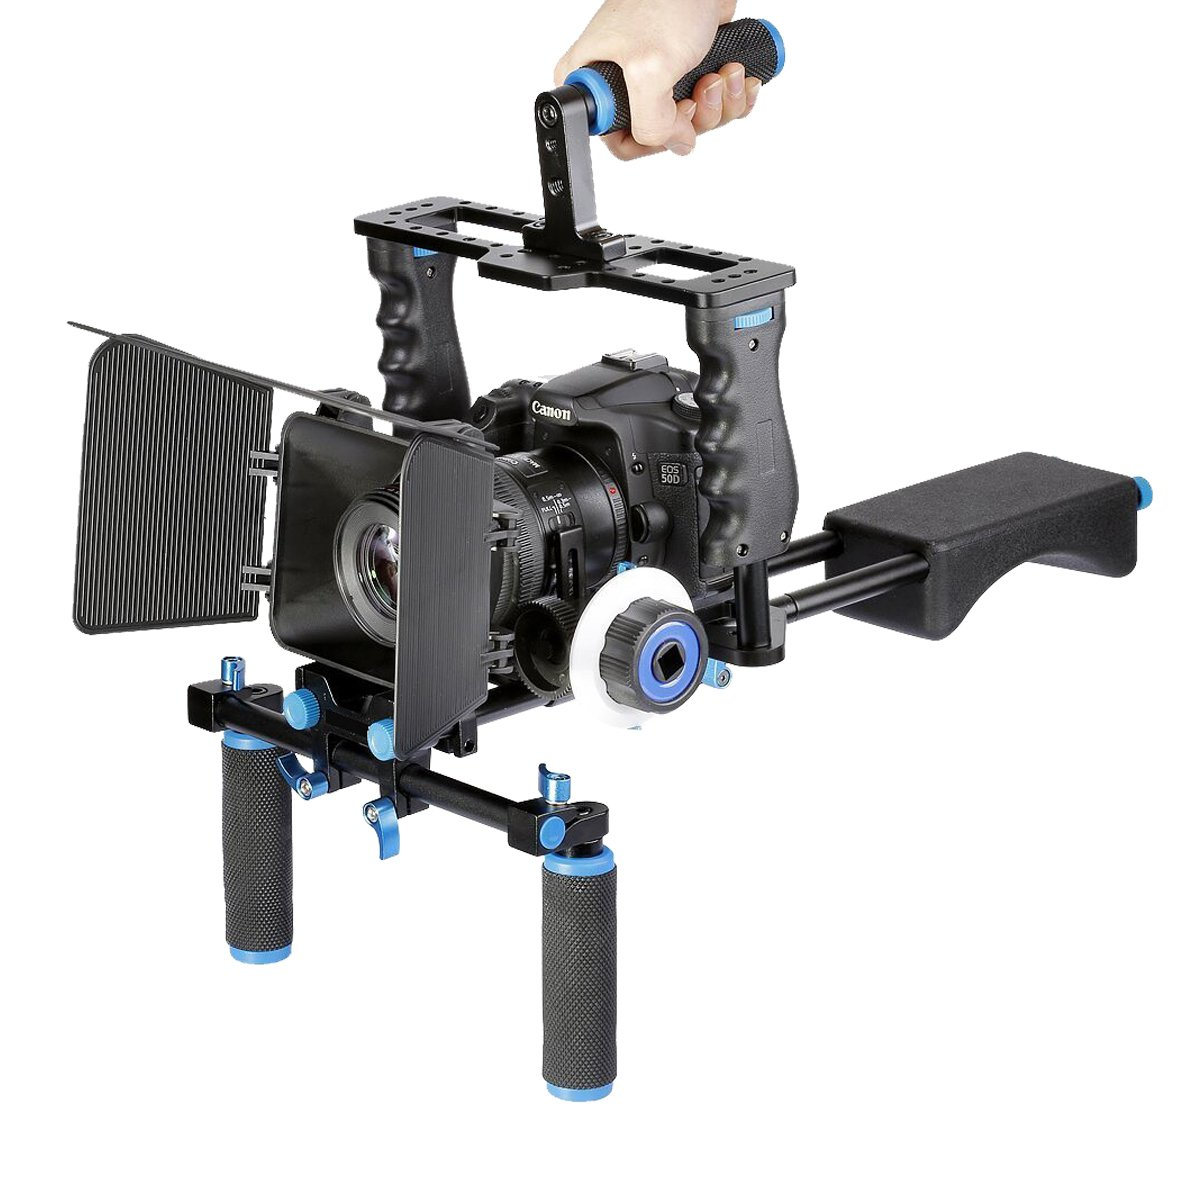 YELANGU Aluminum Film Movie Kit System Rig for Canon/Nikon/Pentax/Sony and other DSLR Cameras, includes:(1)Video Cage+(1)Top Handle Grip+(2)15mm Rod+(1)Matte Box+(1)Follow Focus+(1)Shoulder Rig